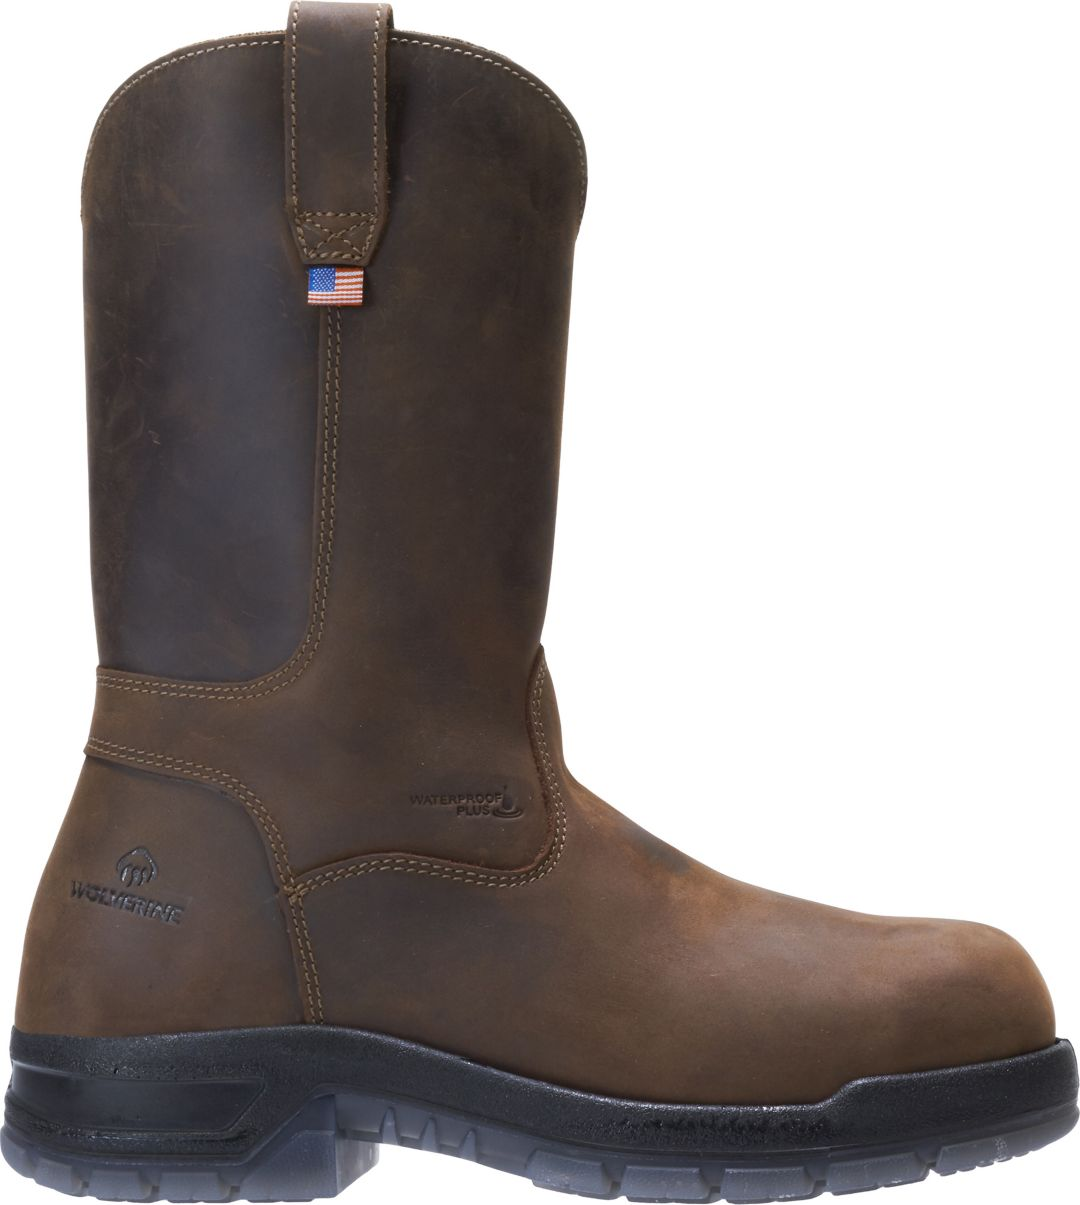 3c2fbae7a9c Wolverine Men's Rampart USA Wellington Waterproof Work Boots